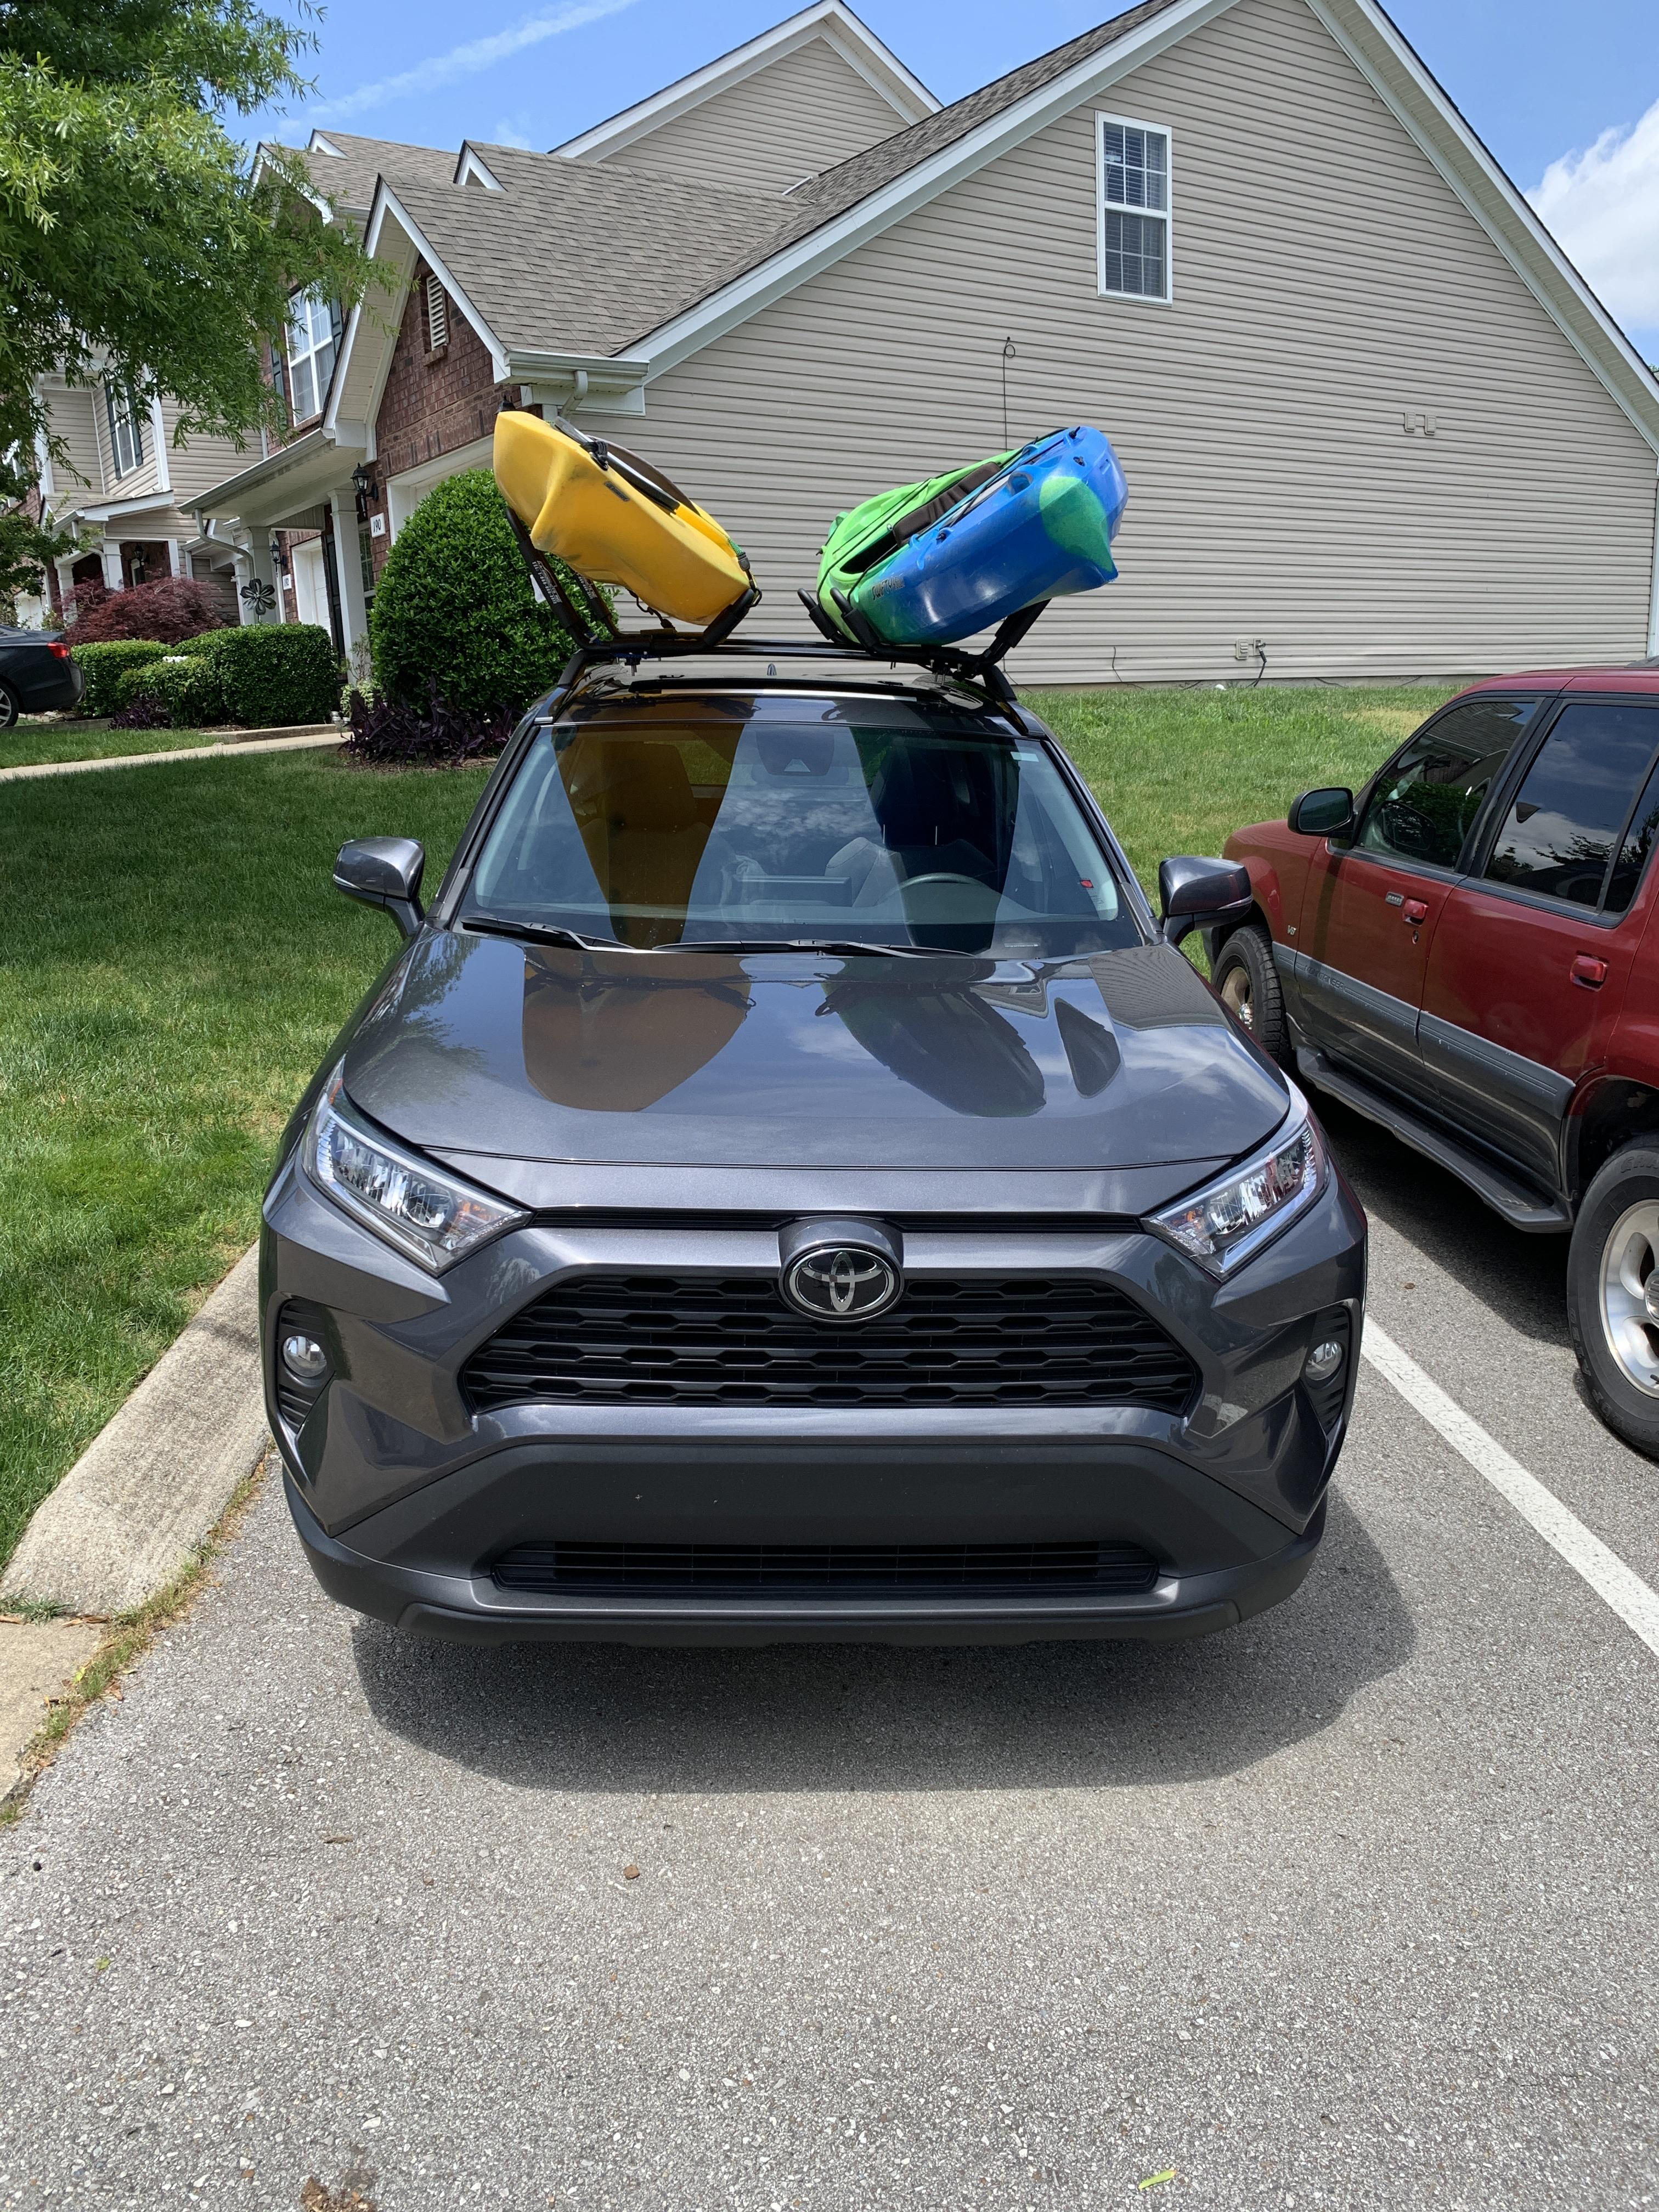 crossbars and kayaks for memorial day